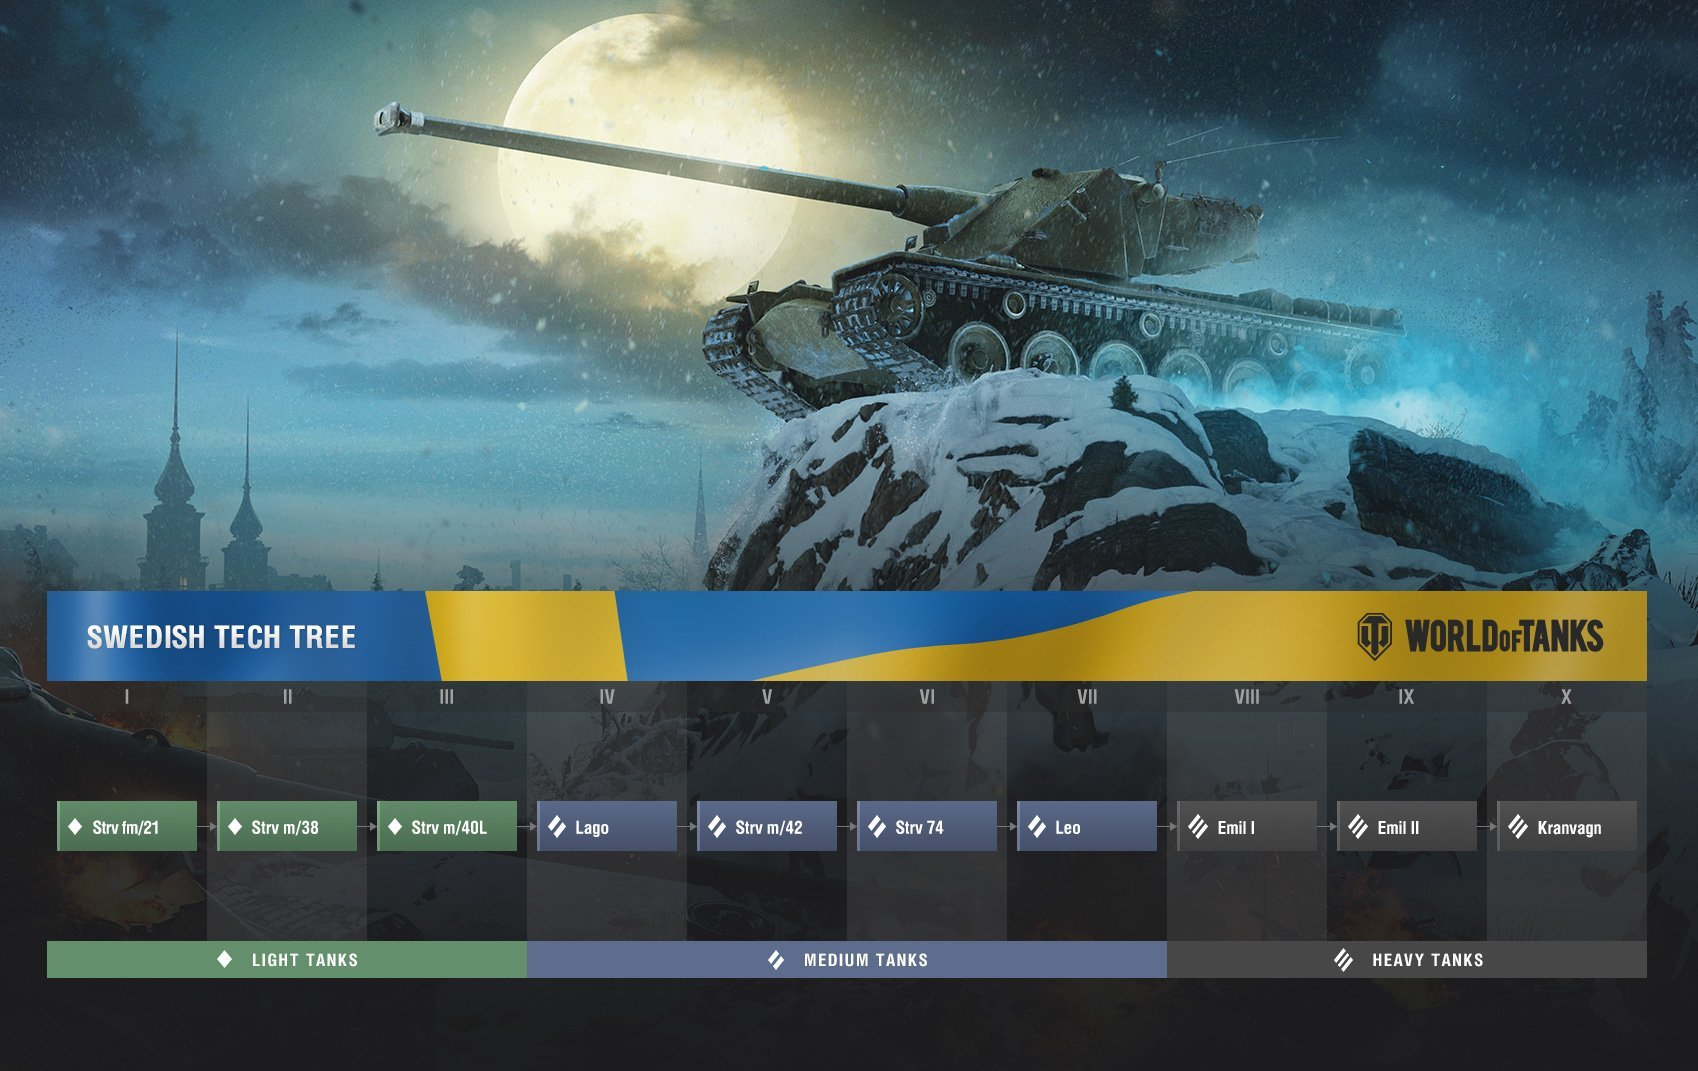 The first Swedish tank line is a hybrid of Light, Medium, and Heavy tanks.